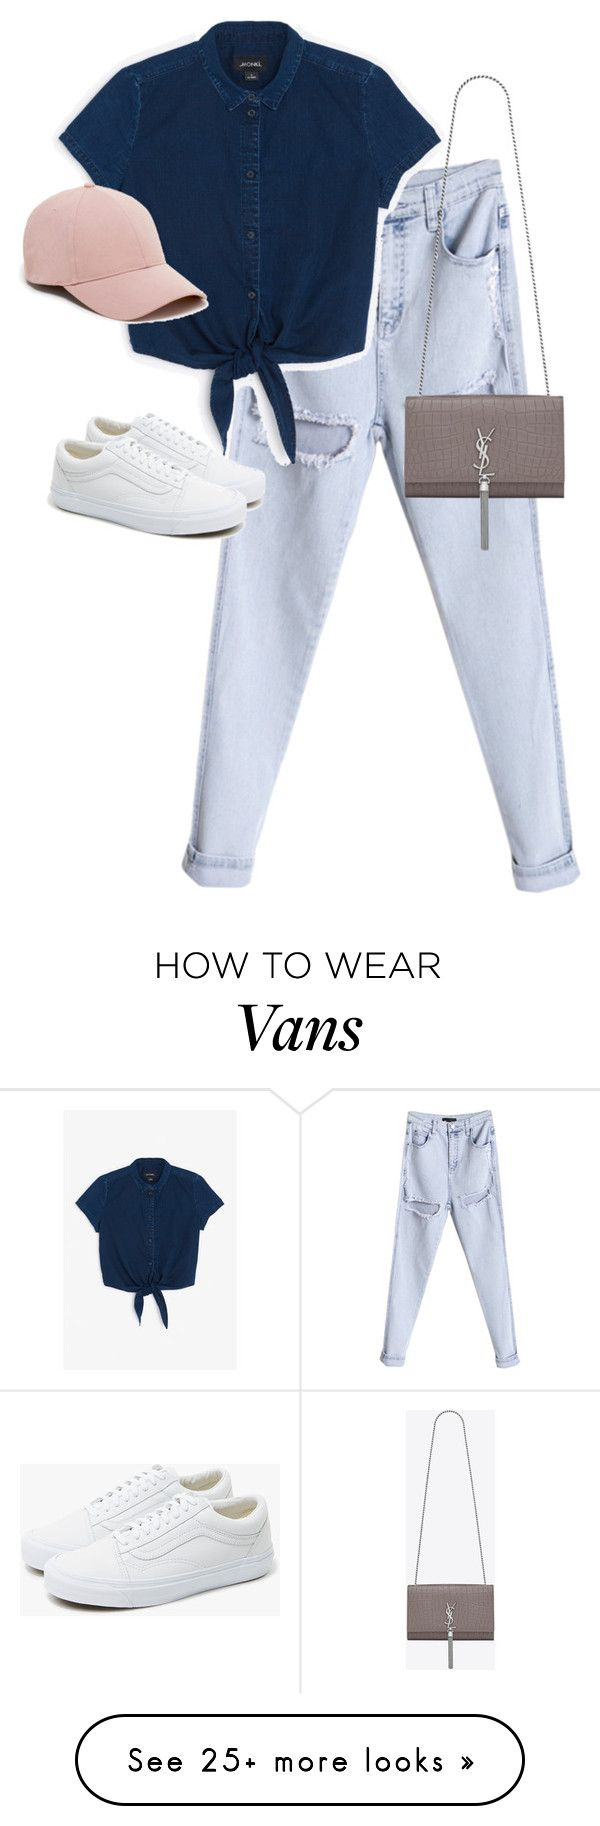 """Untitled #13208"" by alexsrogers on Polyvore featuring Monki, Sole Society, Vans and Yves Saint Laurent"